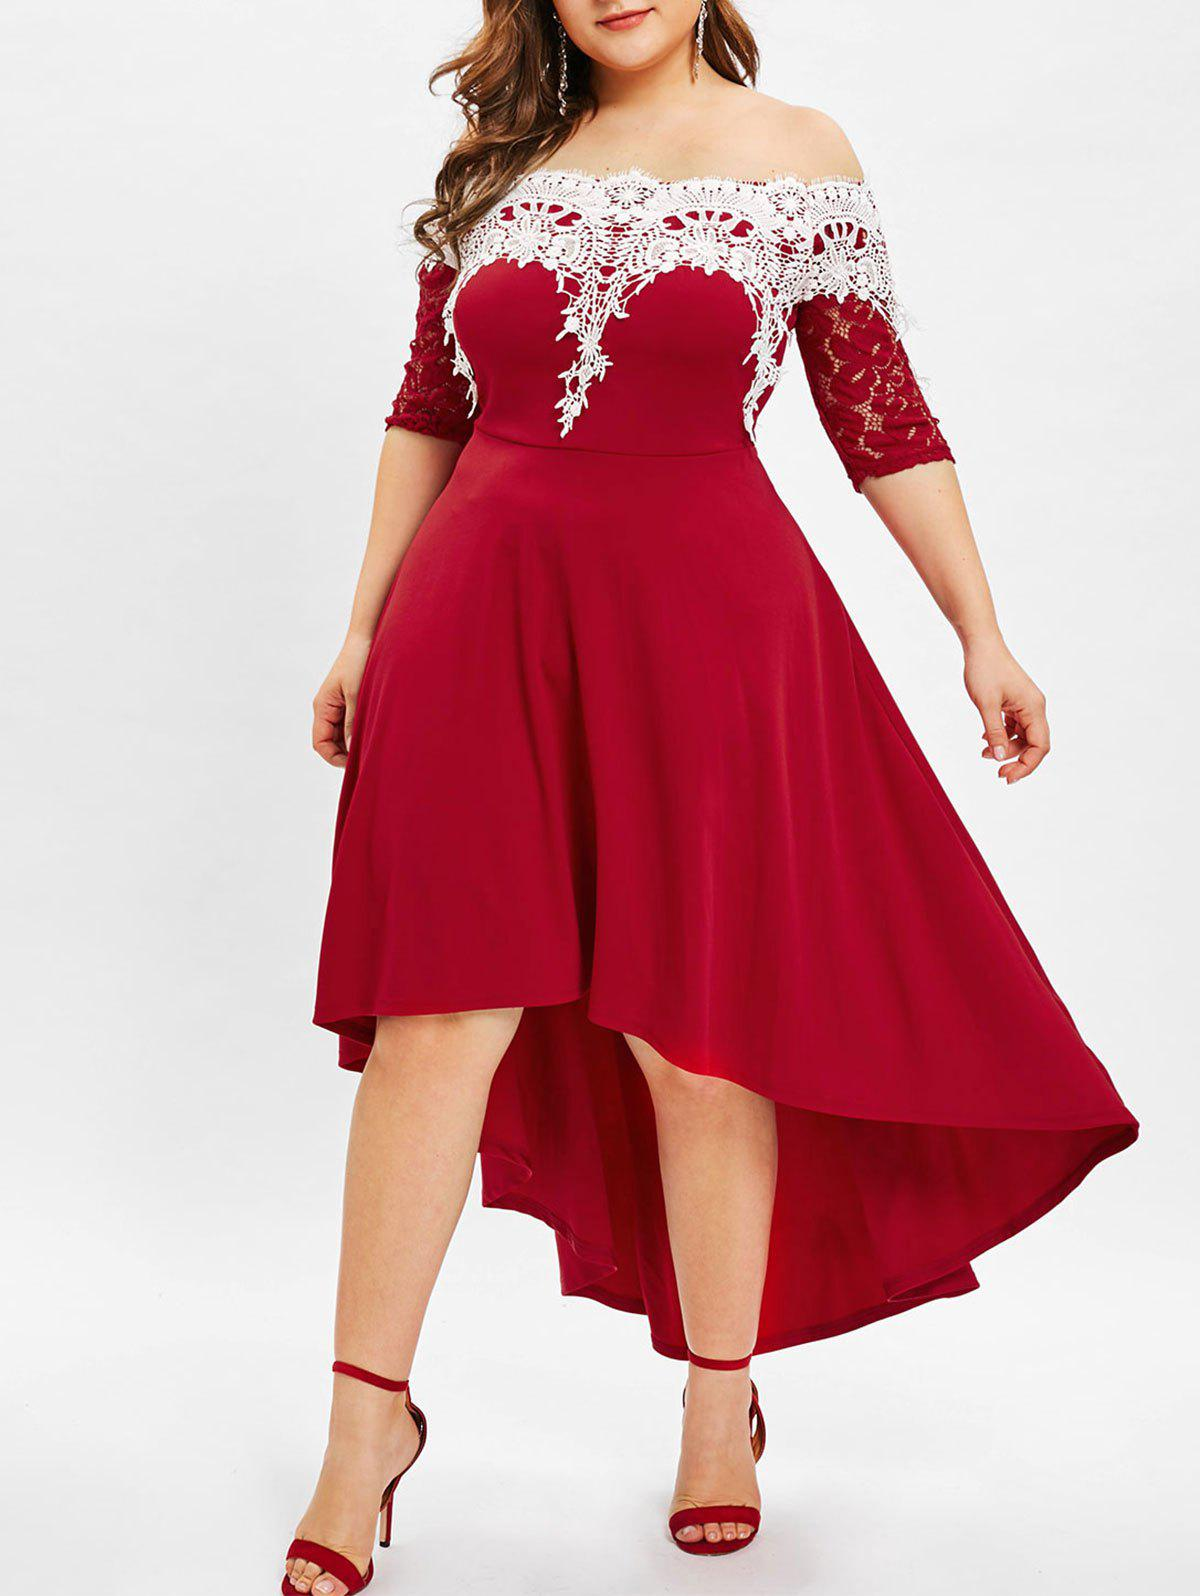 6d1d30fb0c8 29% OFF  Lace Panel Plus Size High Low Dress